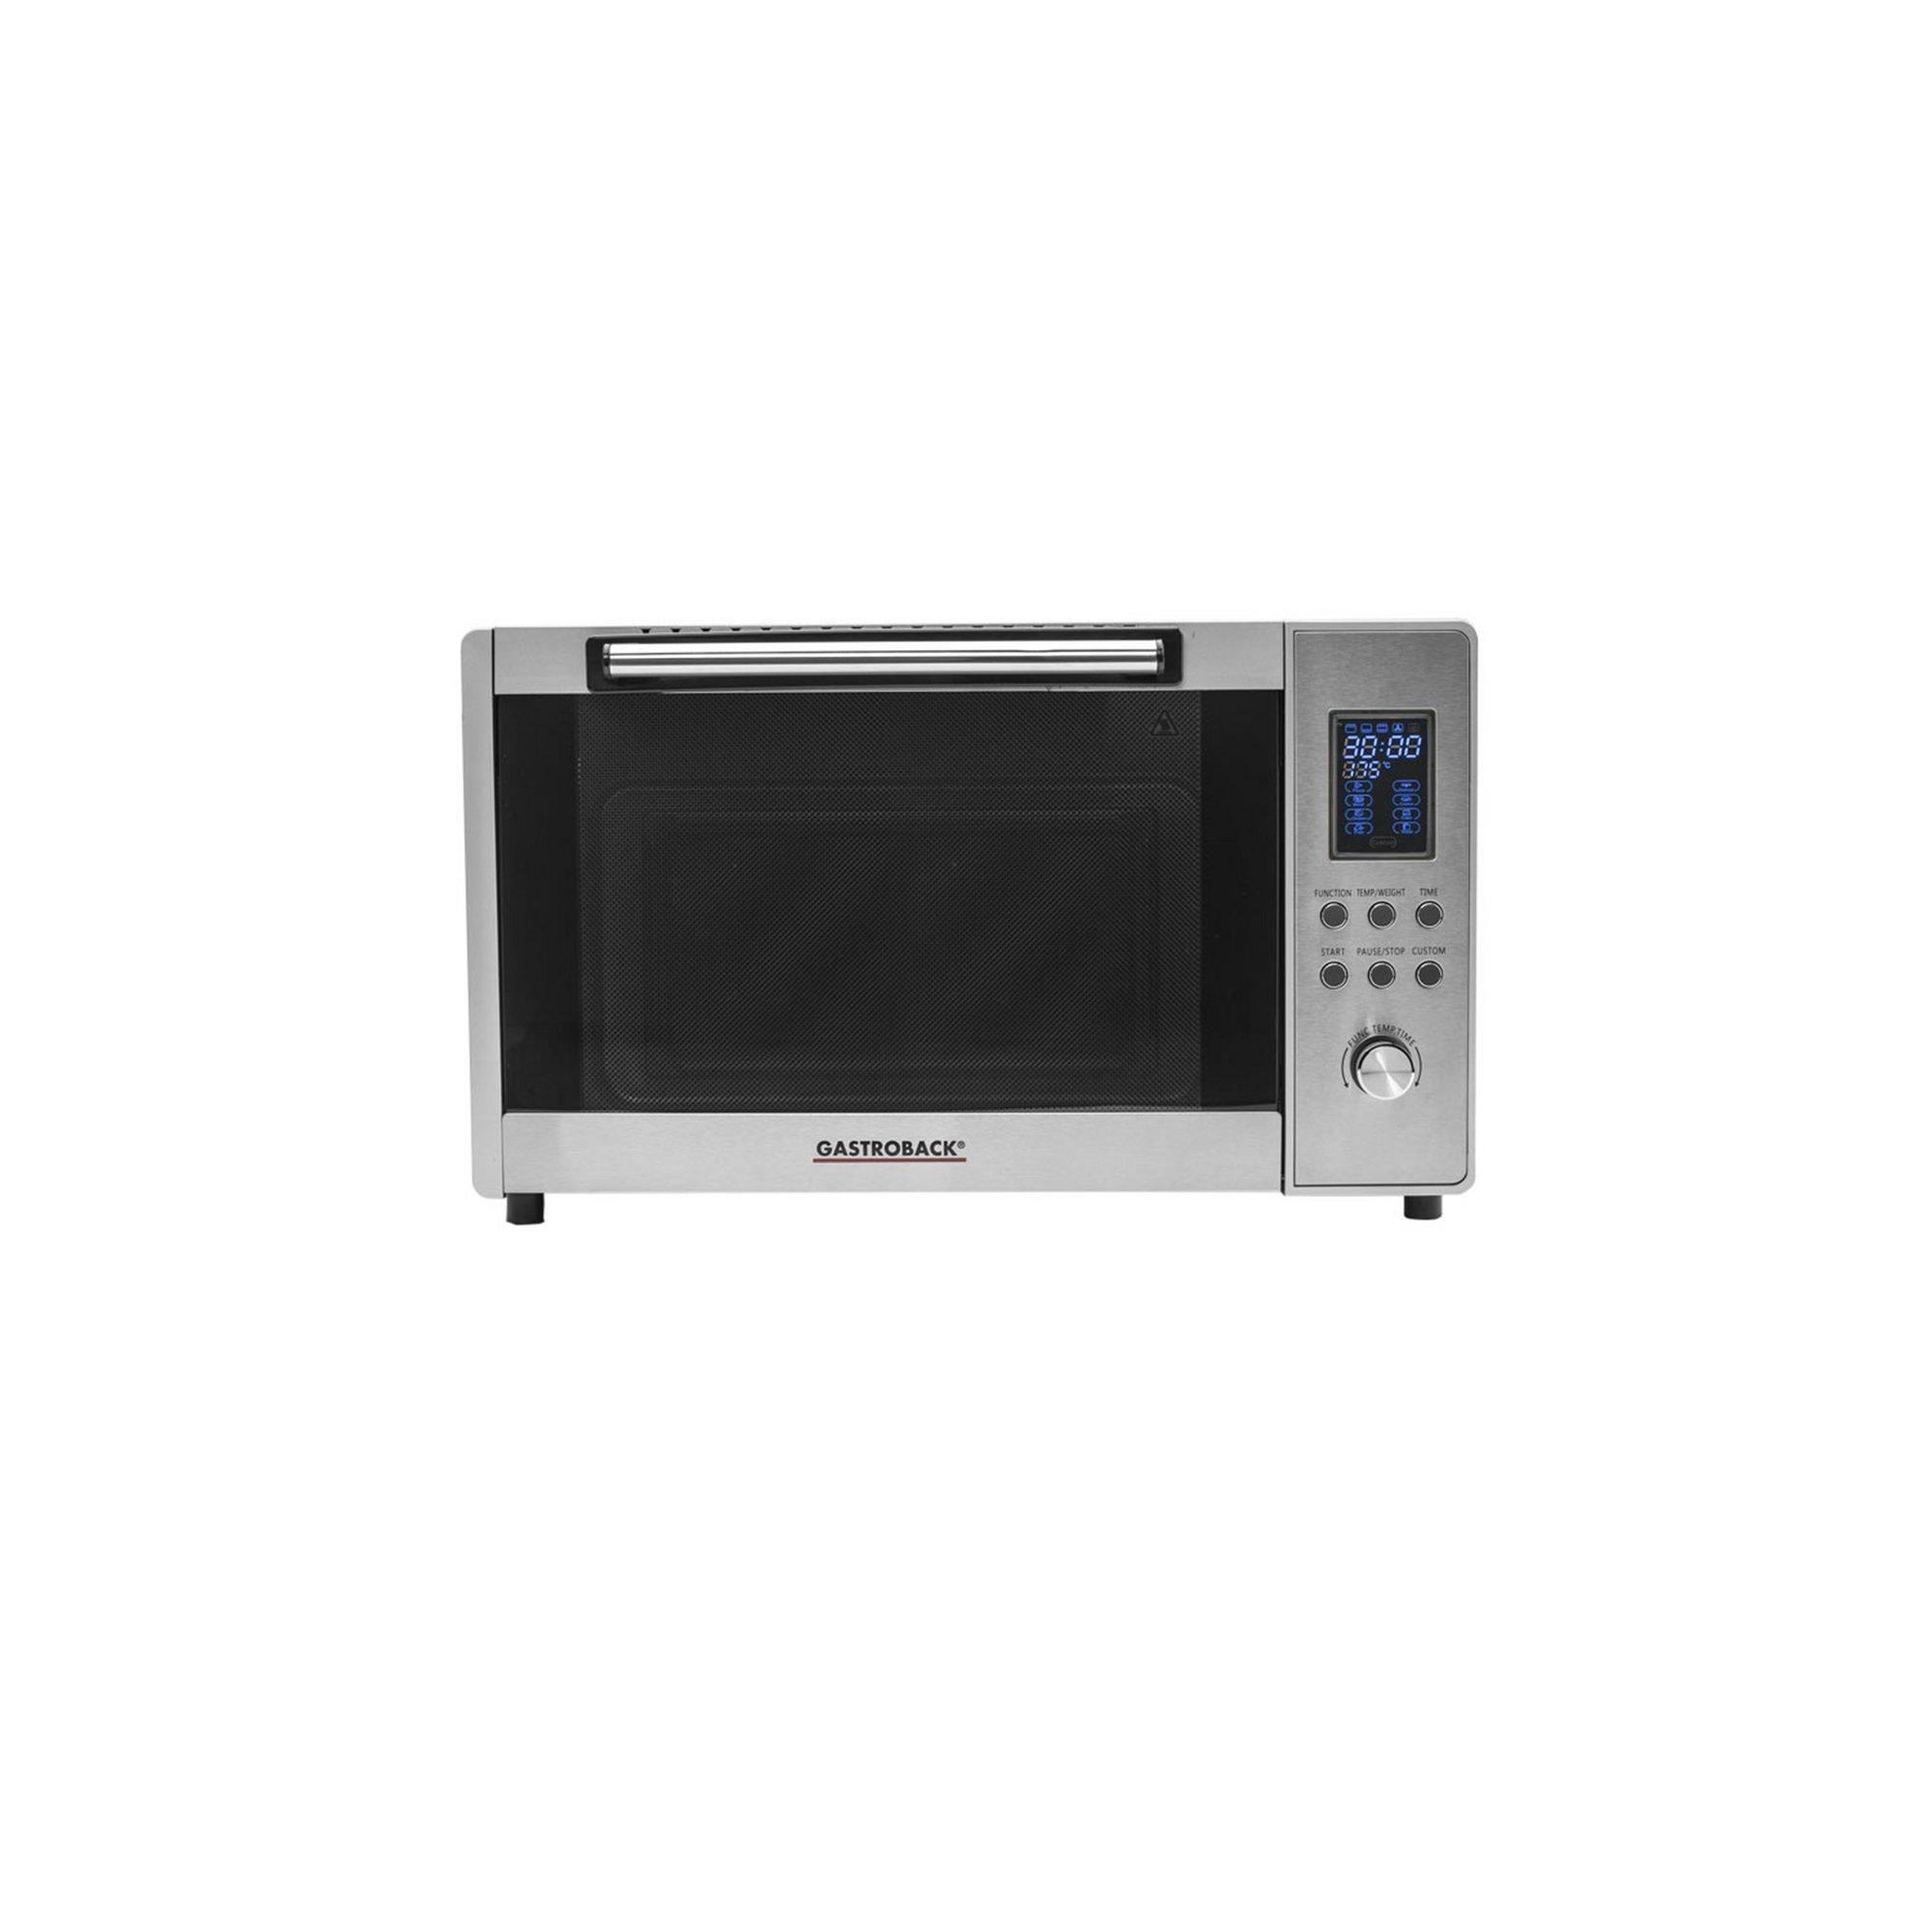 Image of Gastroback Design Bistro Oven Advance Pro